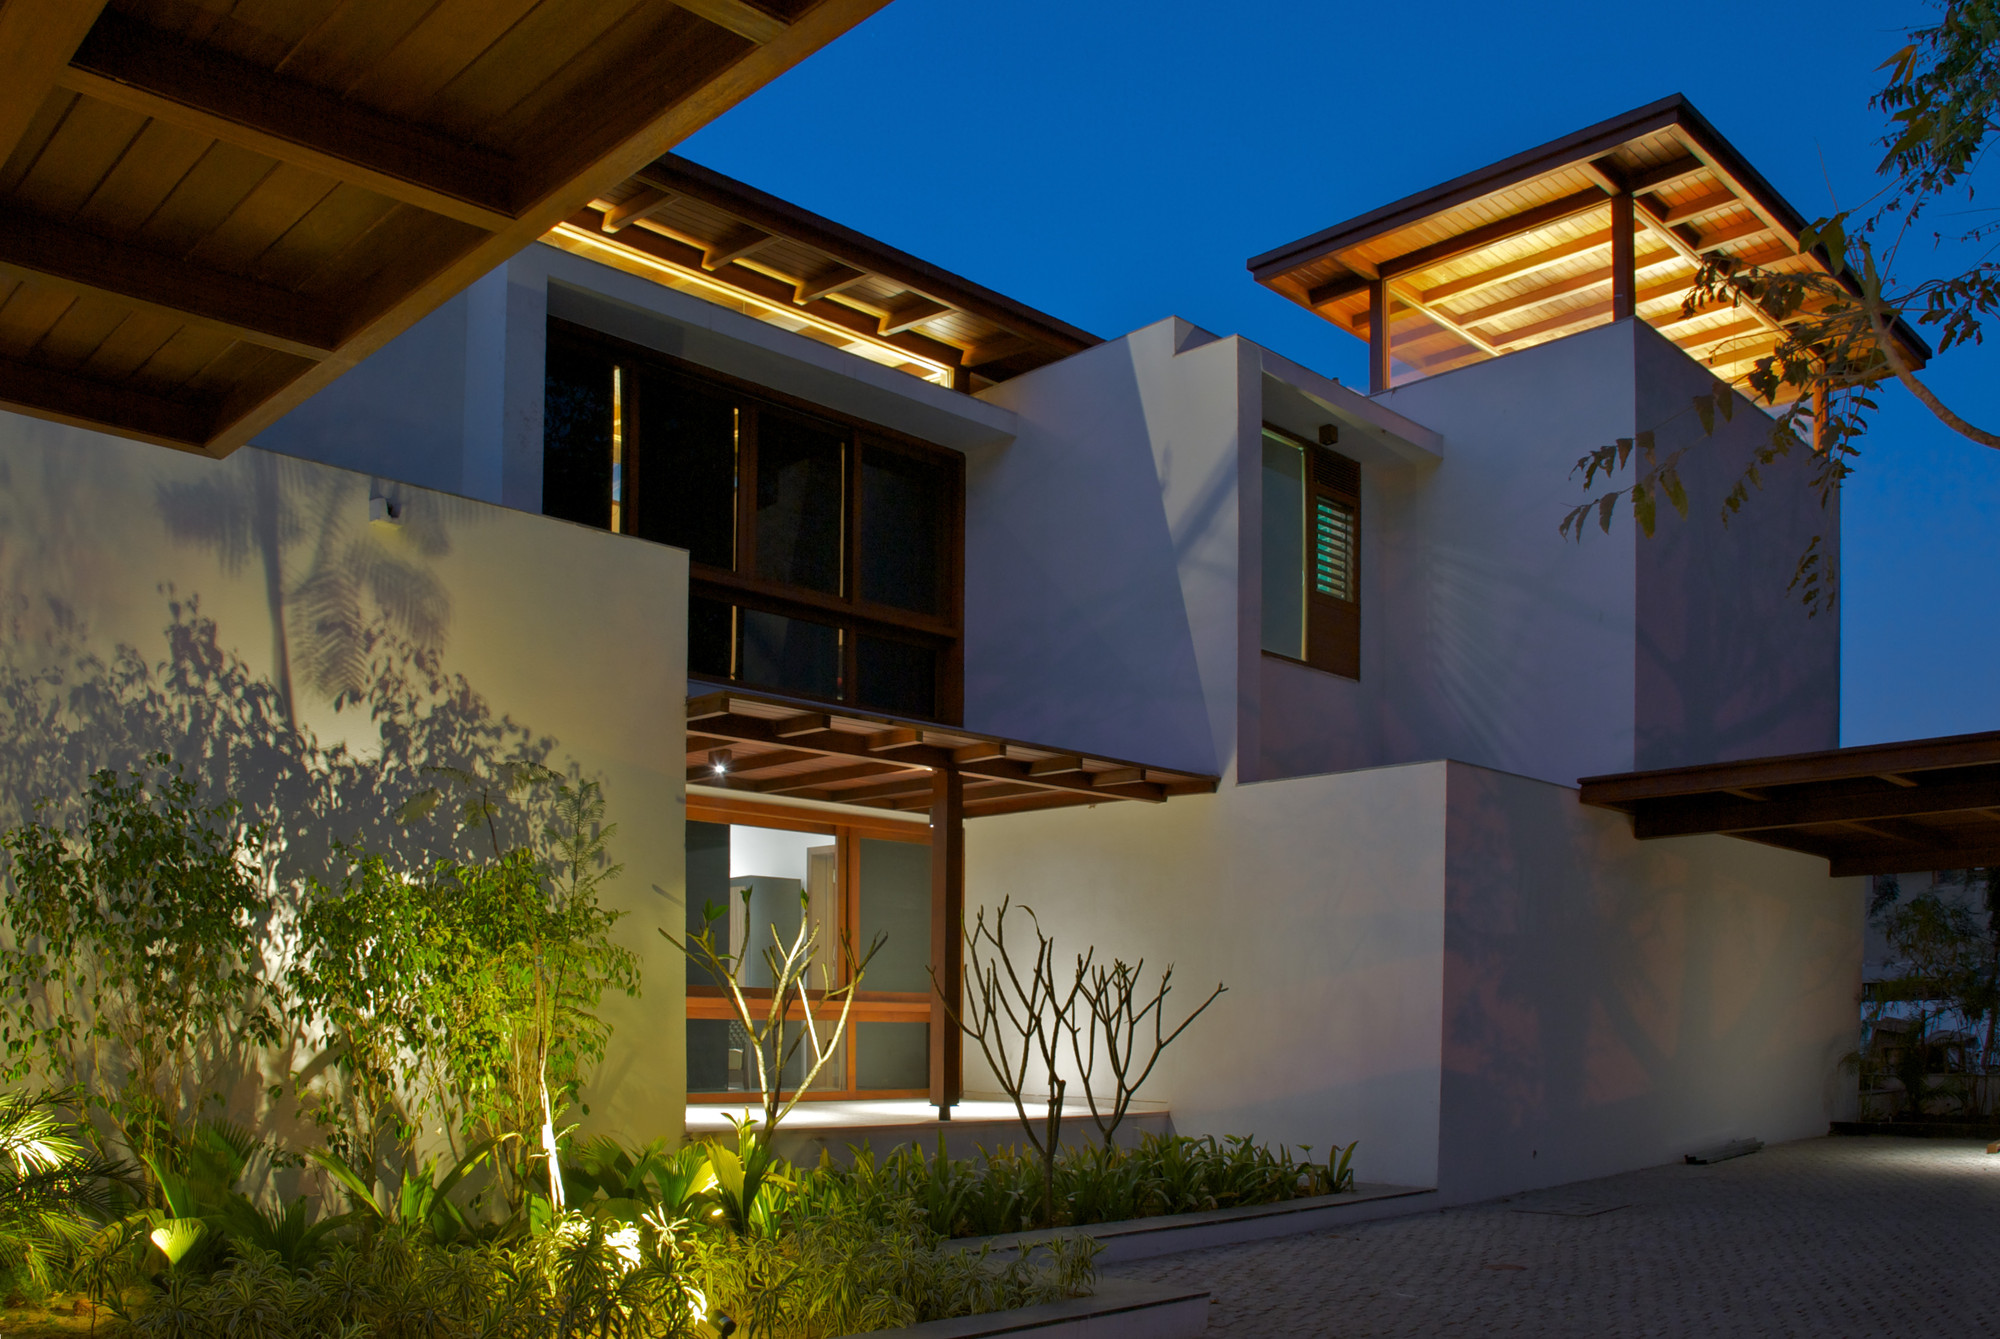 Gallery Of The Courtyard House Hiren Patel Architects 13